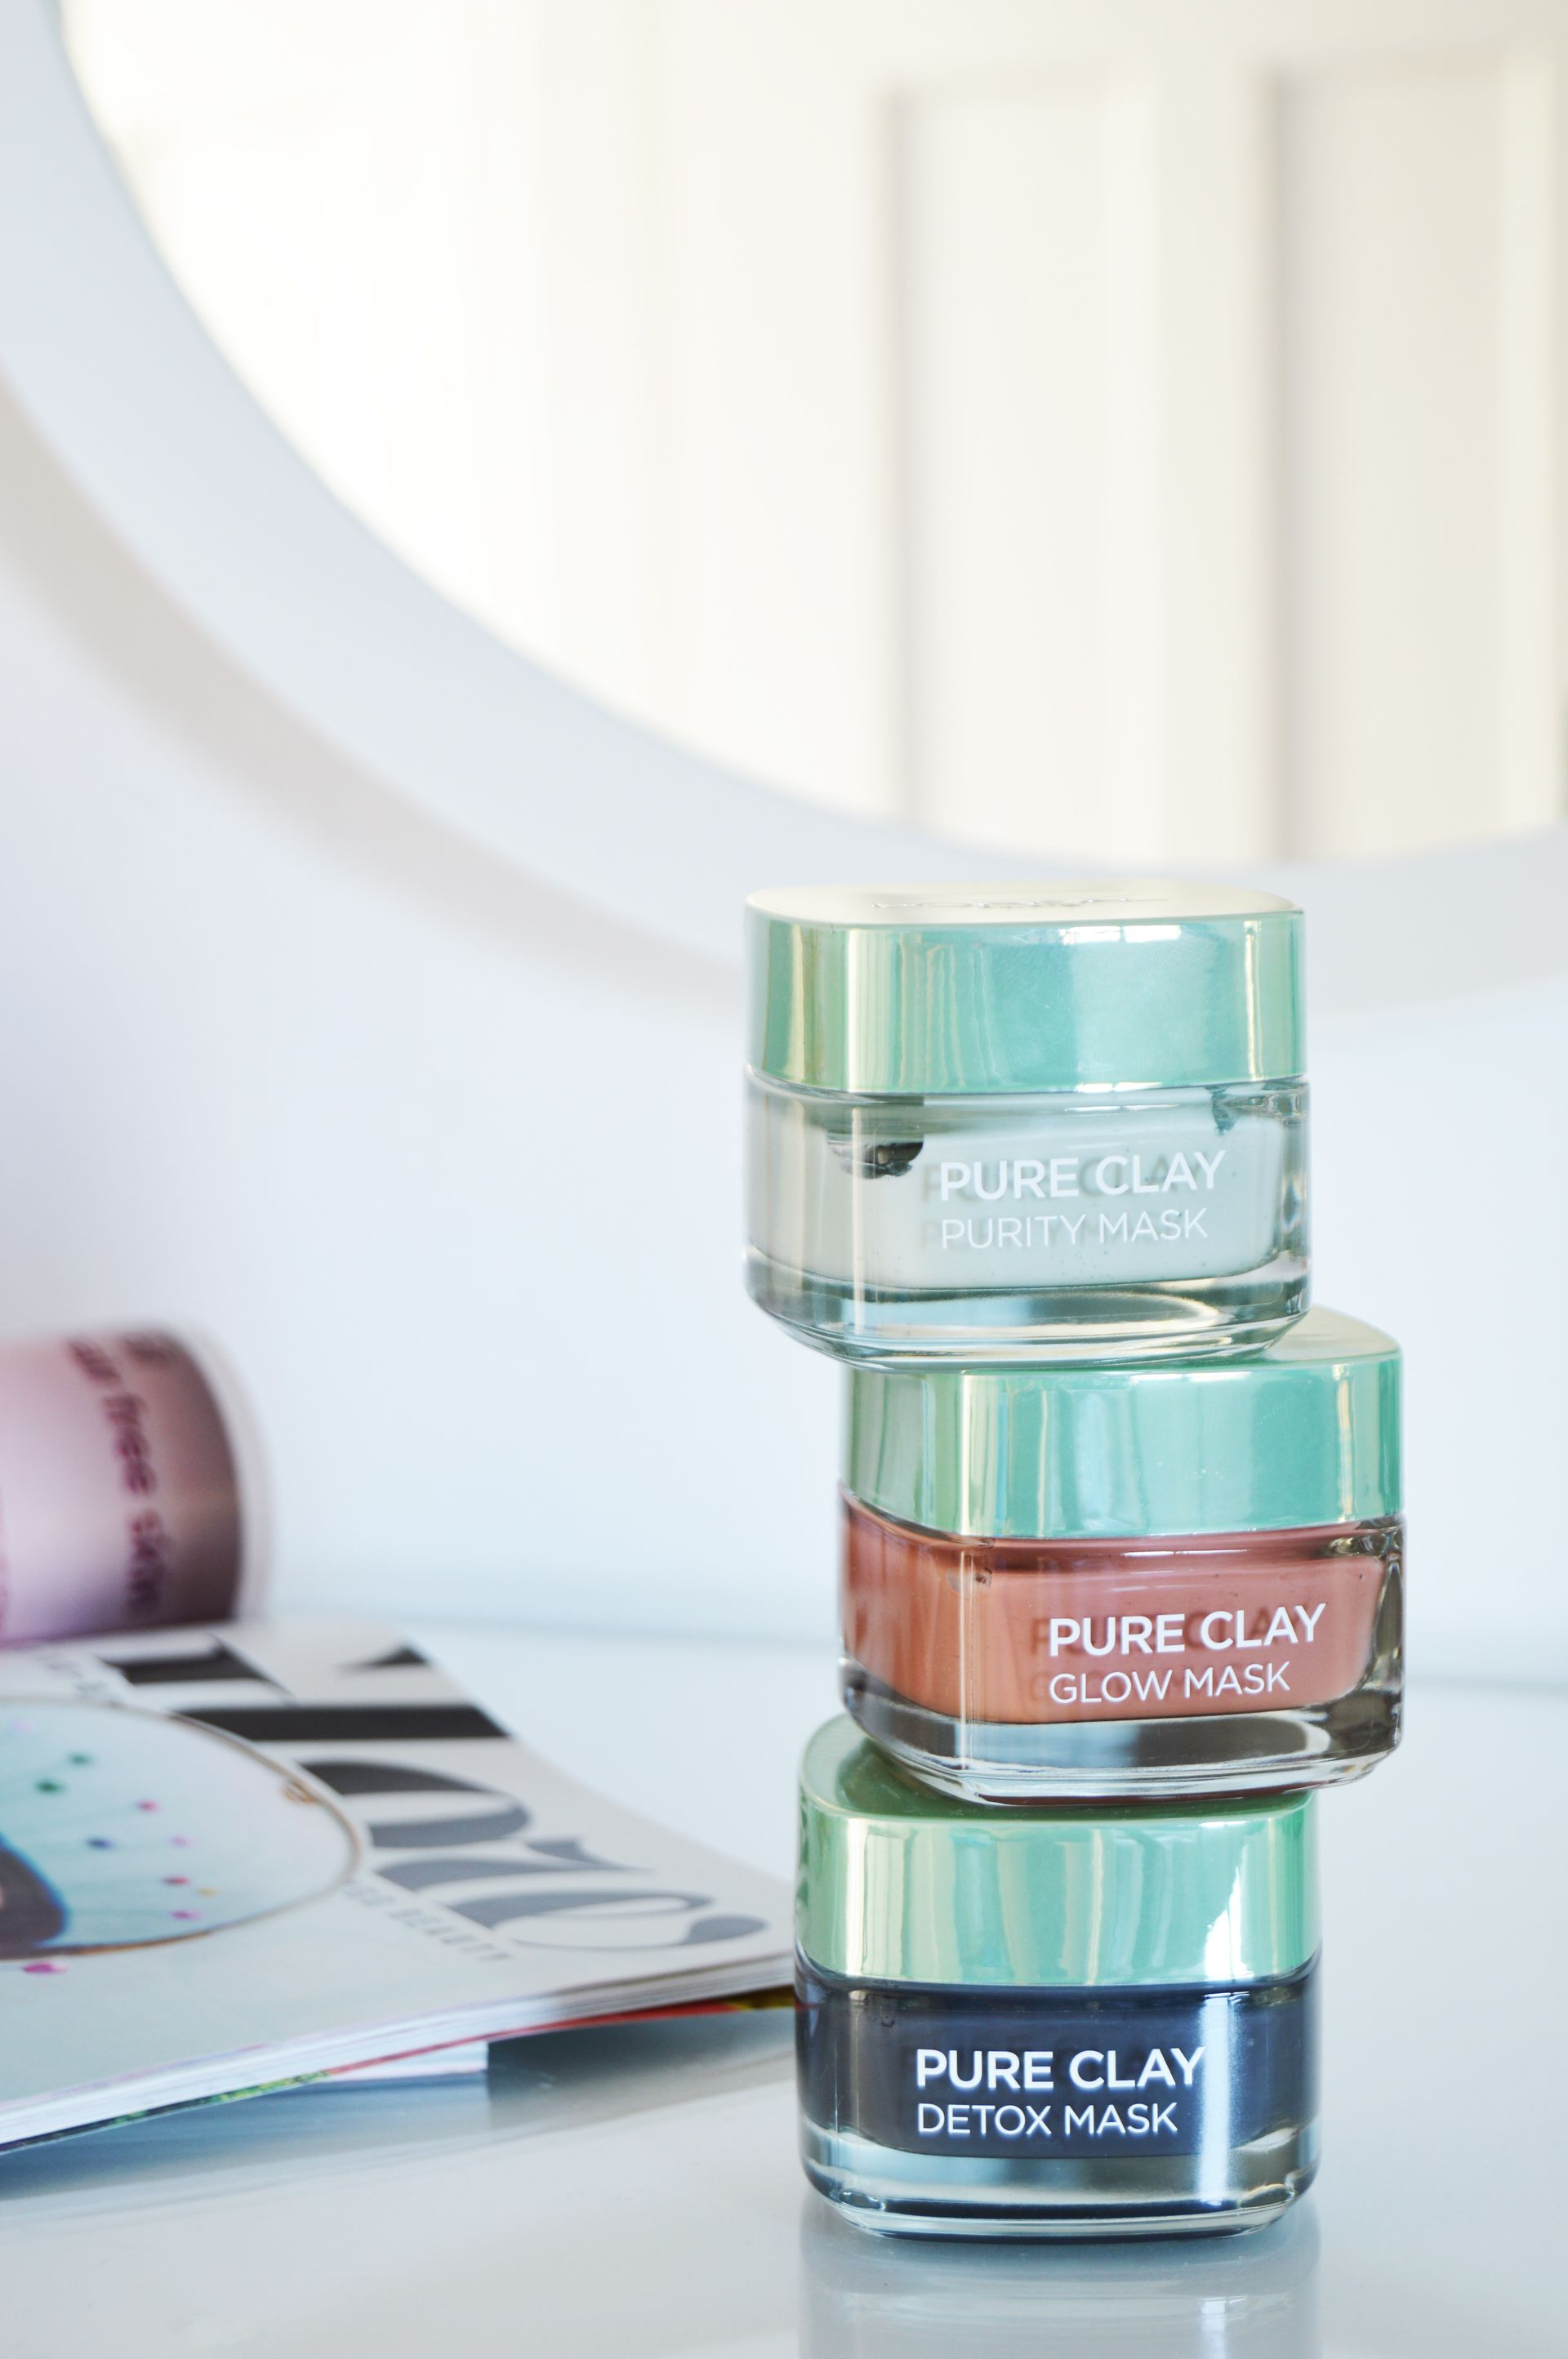 L'Oreal Pure Clay Masks - Detox, glow and purity masks claim to give you the brighter and softer looking skin and help you get rid of the impurities.